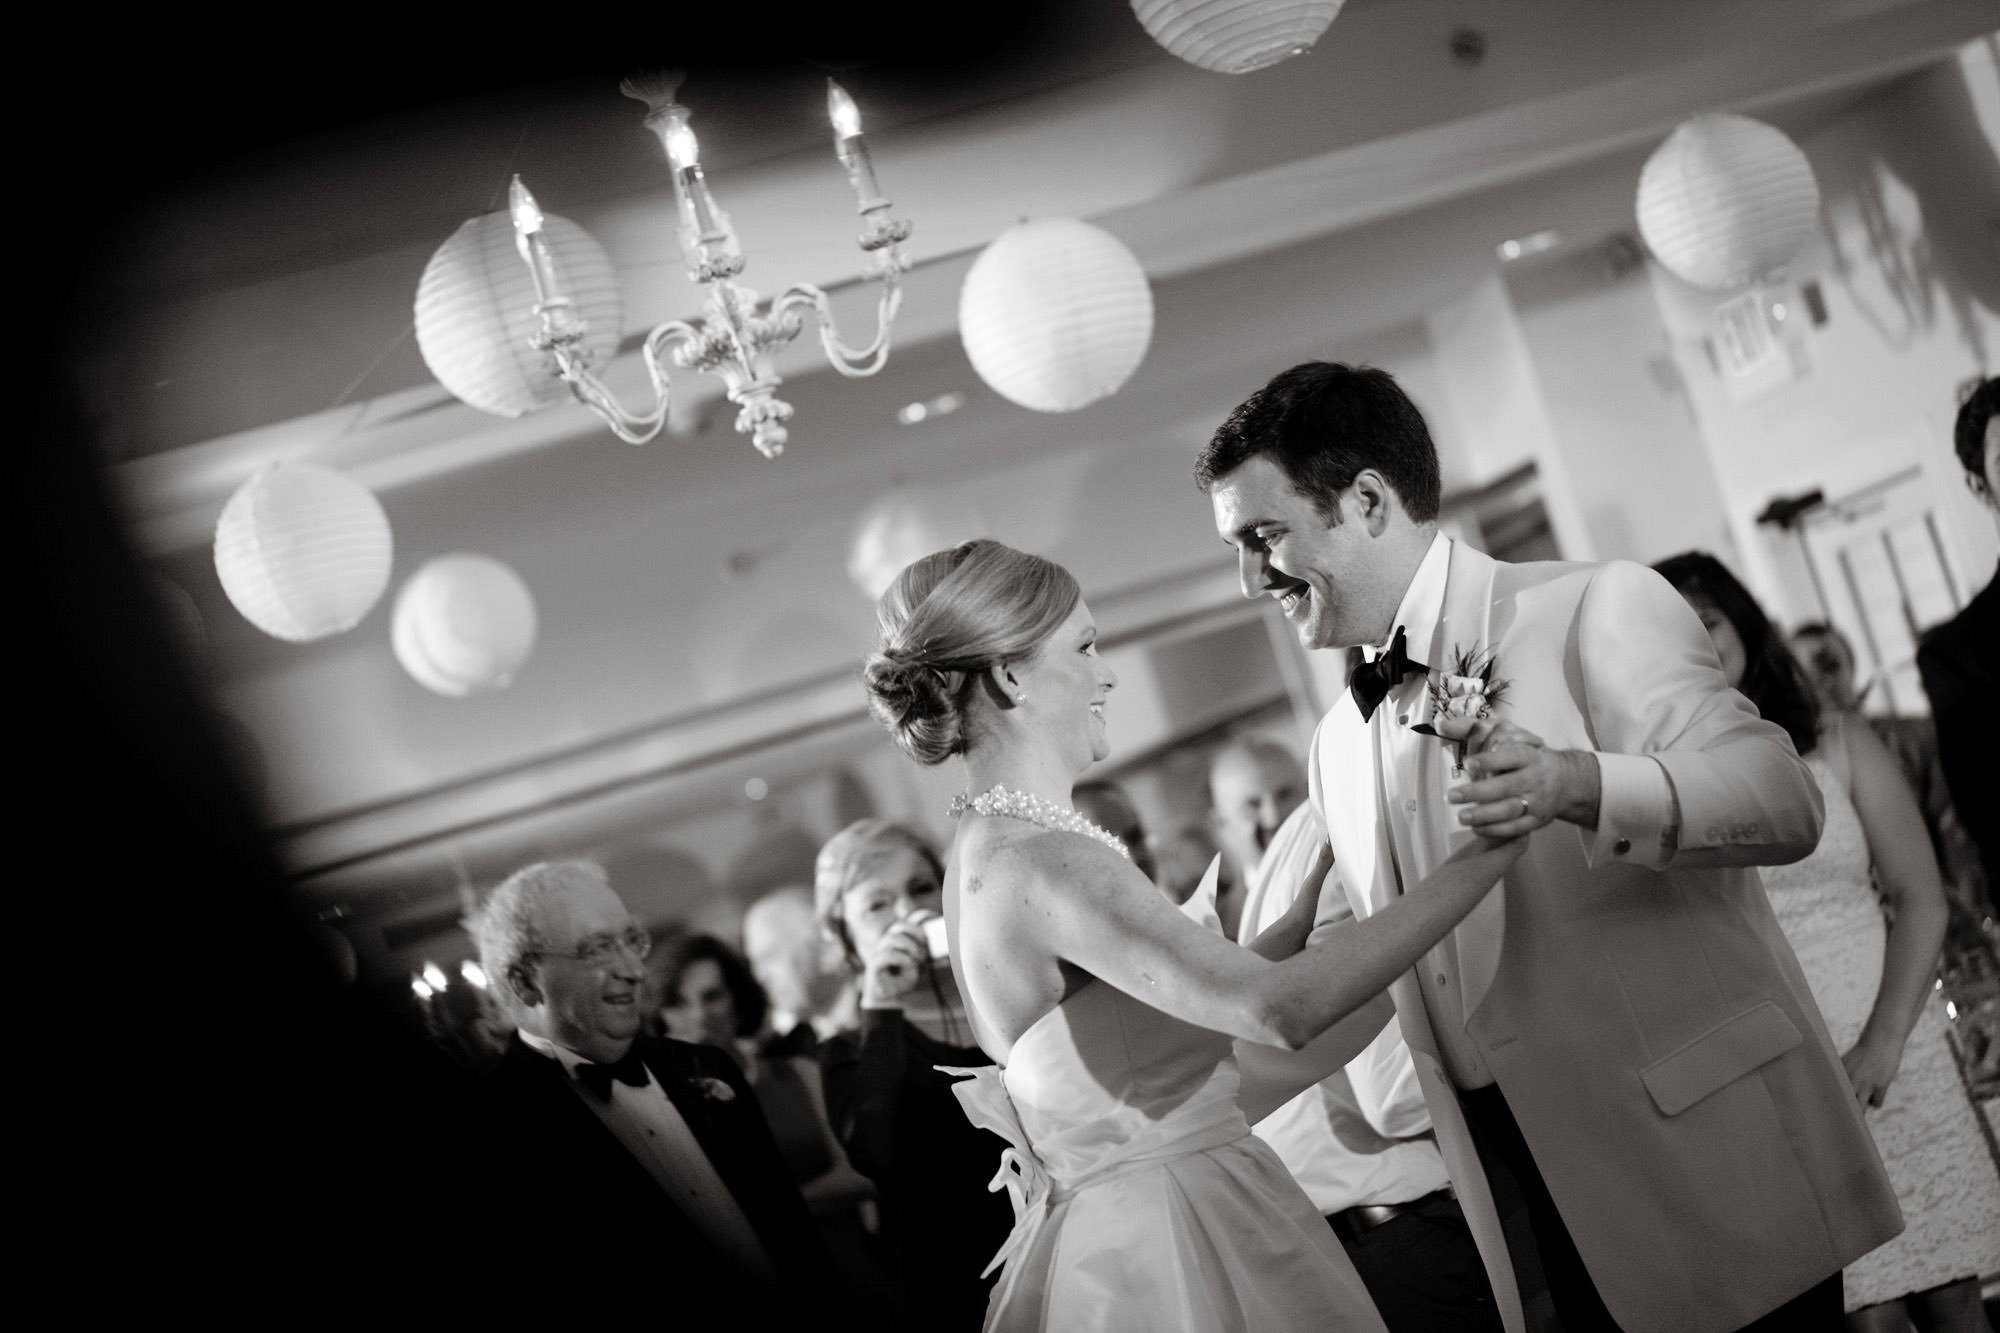 The bride and groom share their first dance during the Oaks Waterfront Inn and Events Wedding reception.